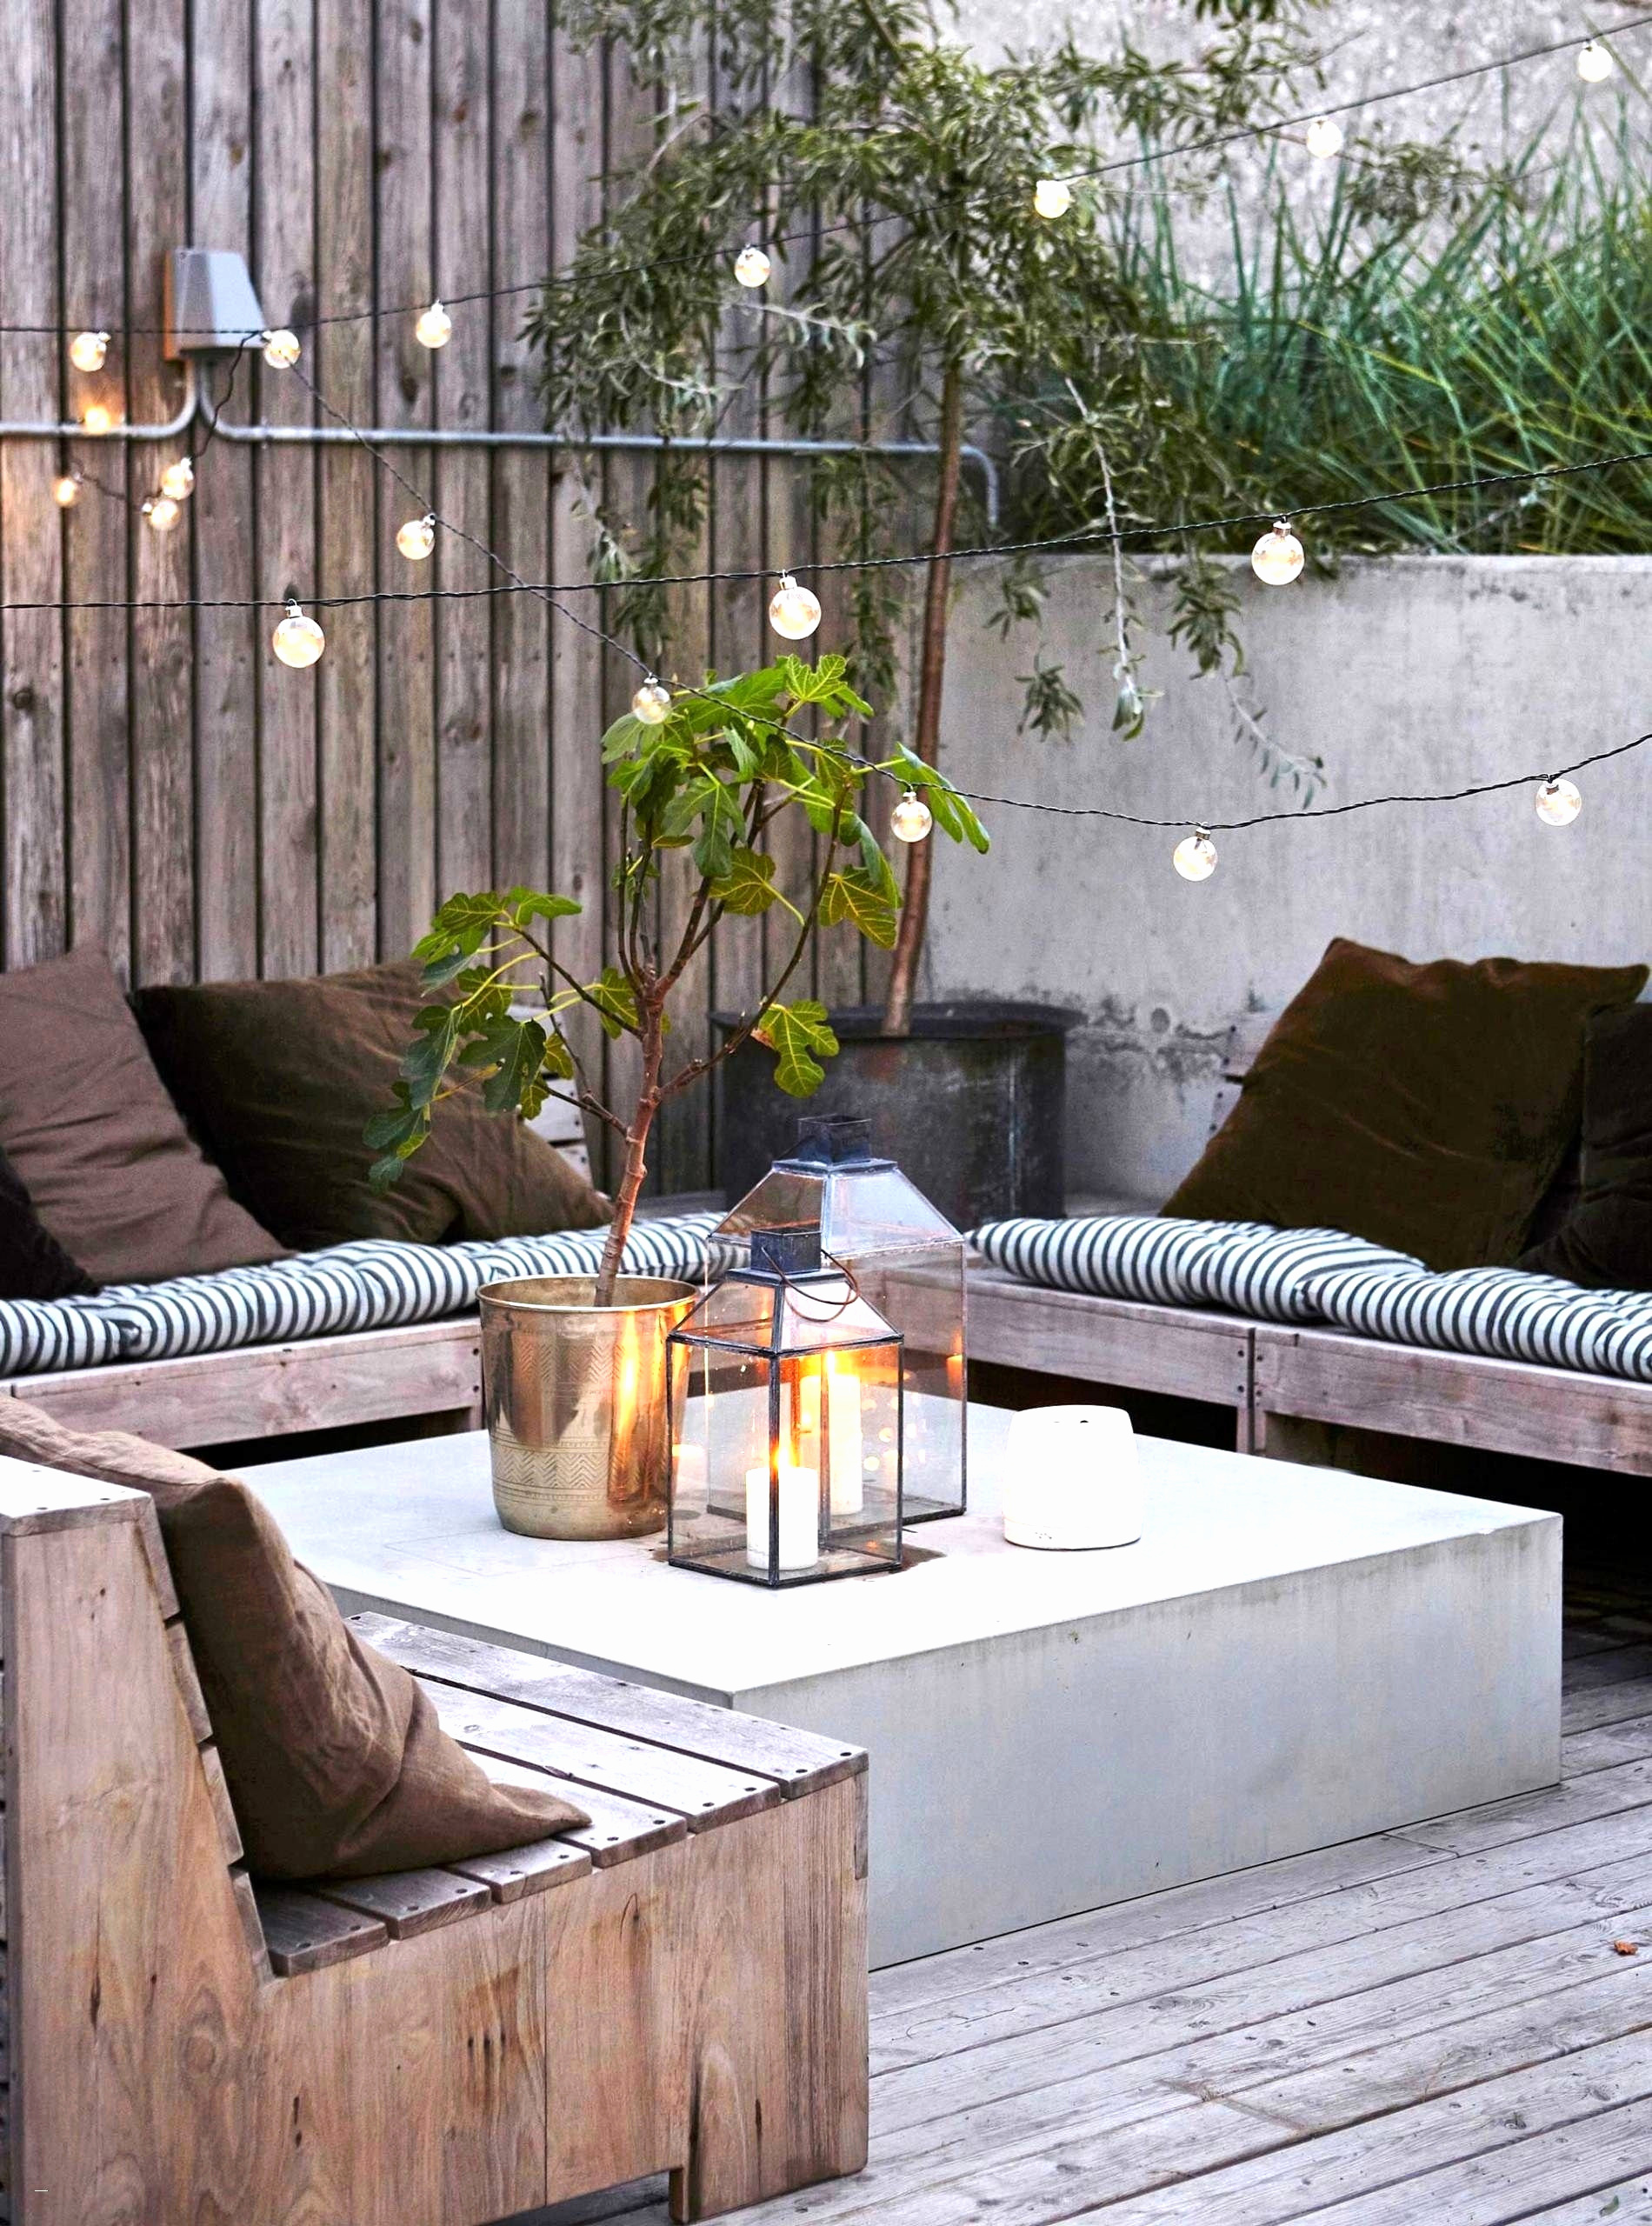 concrete block garden awesome einzigartig 41 zum cottage garten anlegen creators of luxurious of concrete block garden